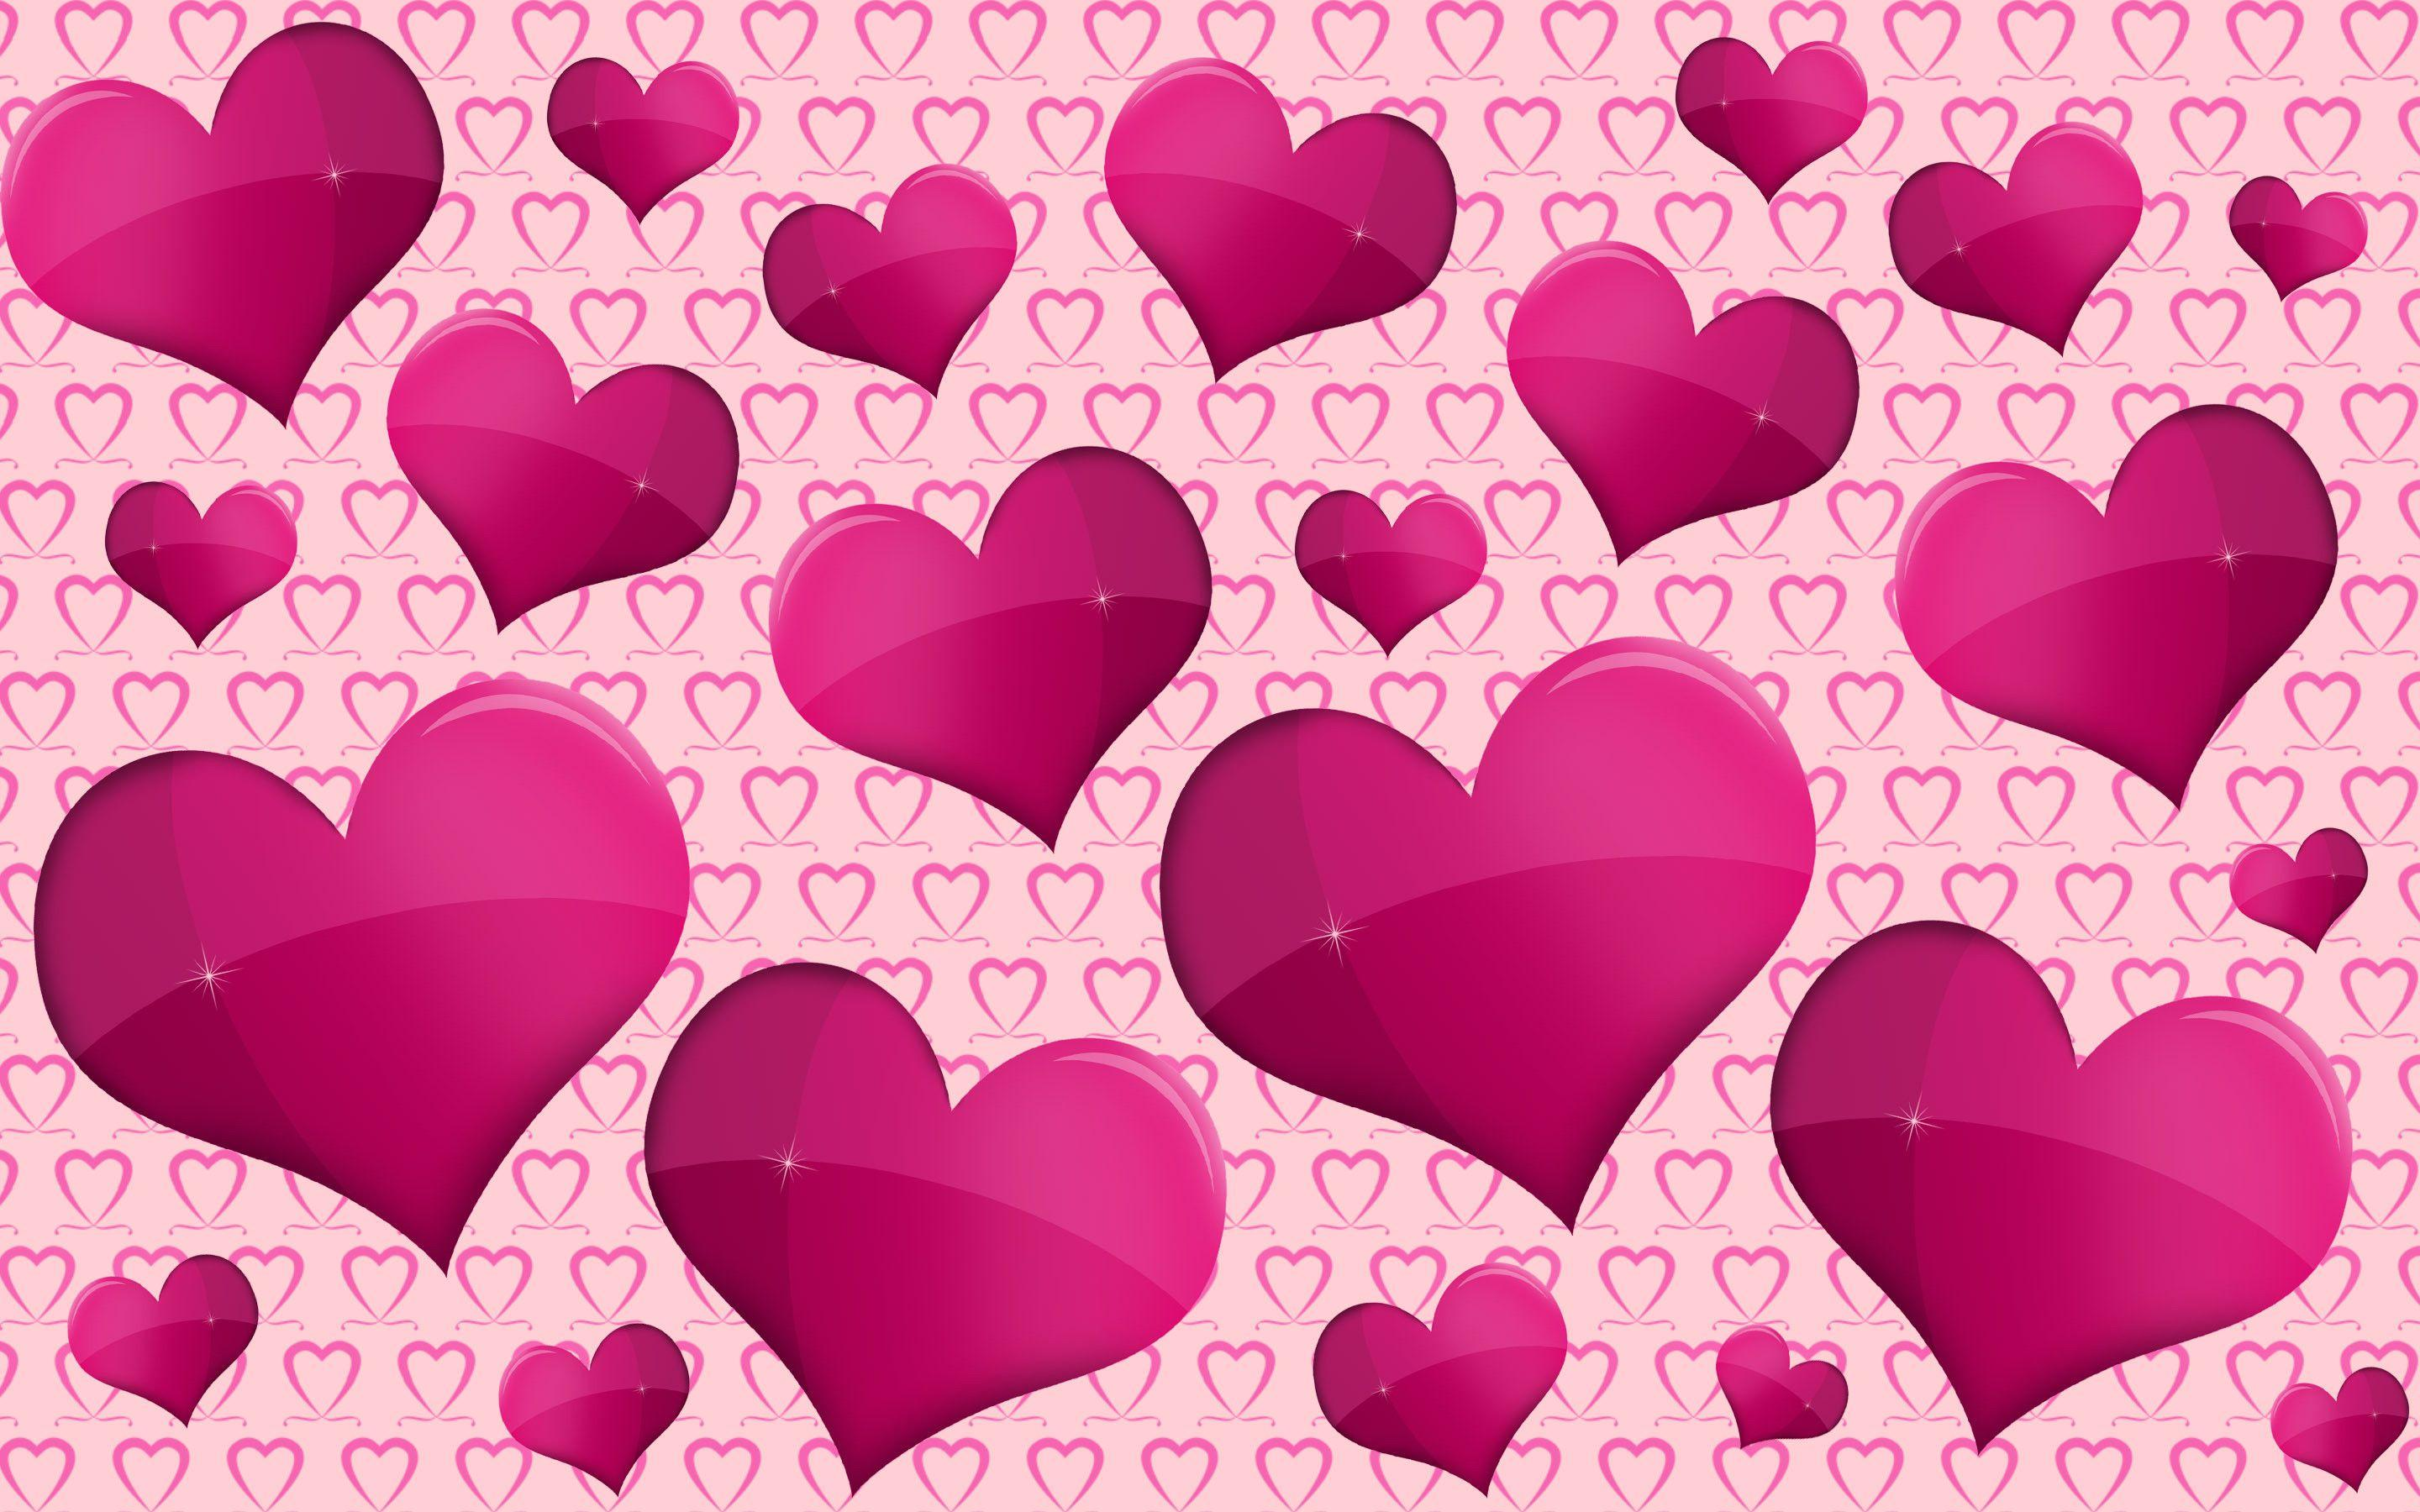 wallpapers purple hearts pink - photo #30